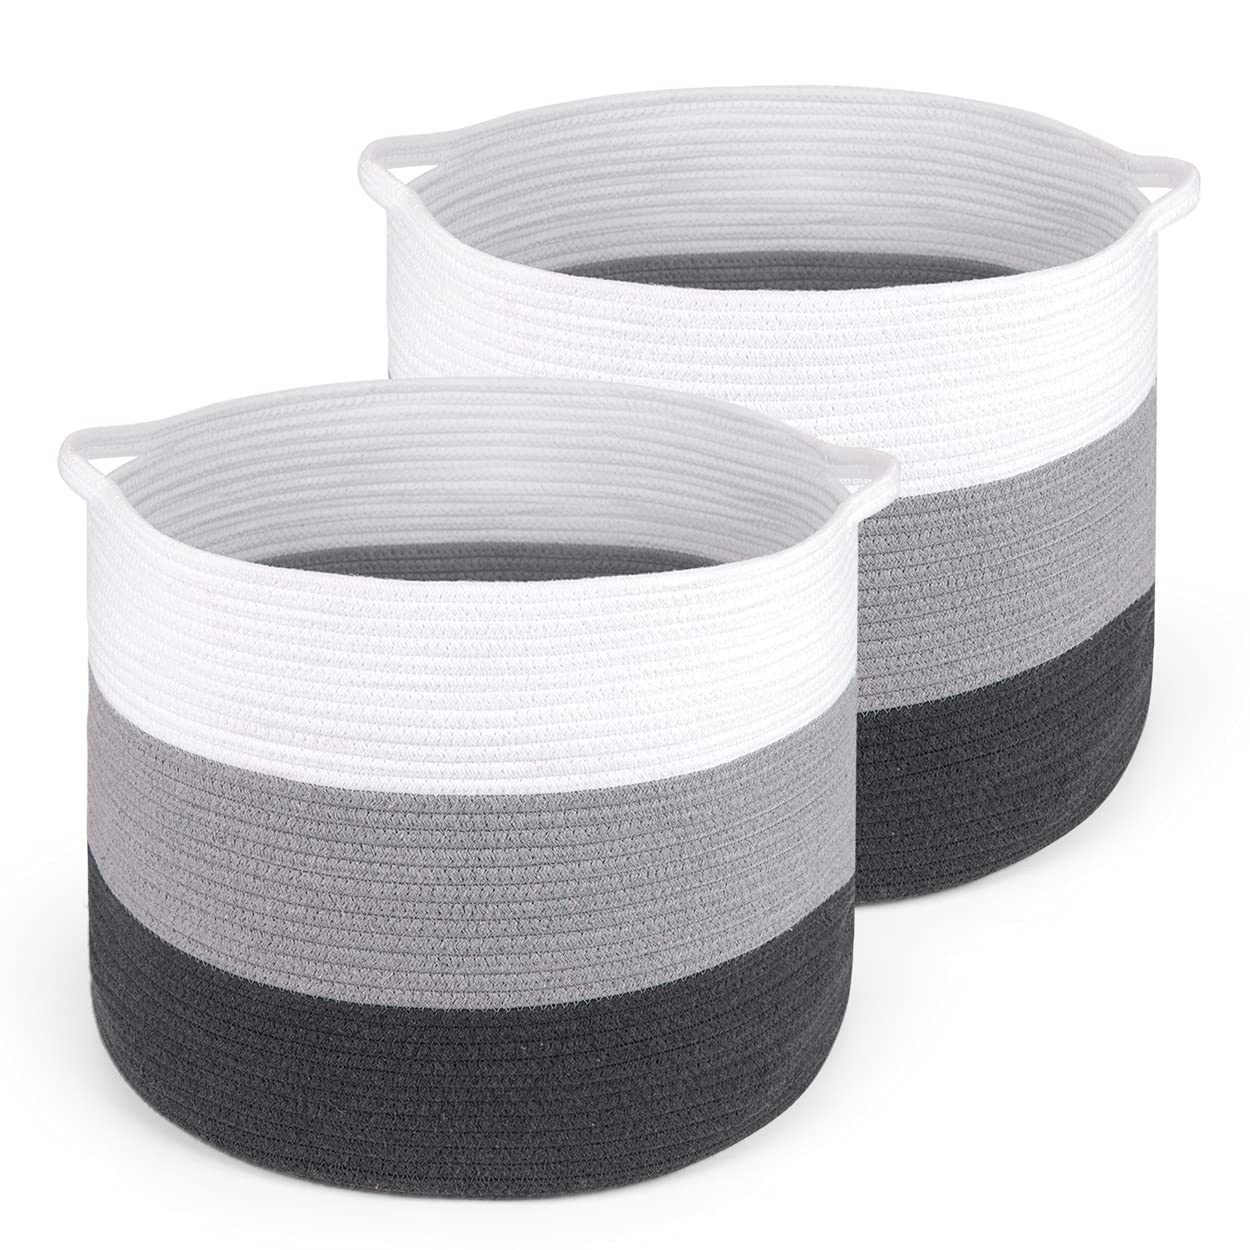 BAIST 2-Pack Large Cotton Rope Basket Fabric Laundry Storage Basket, Decorative Blanket Basket Foldable Cloth Storage Cube with Handles for Kids Dog Food Toys Nursery -18 x 18 x 14 in White Dark Gary